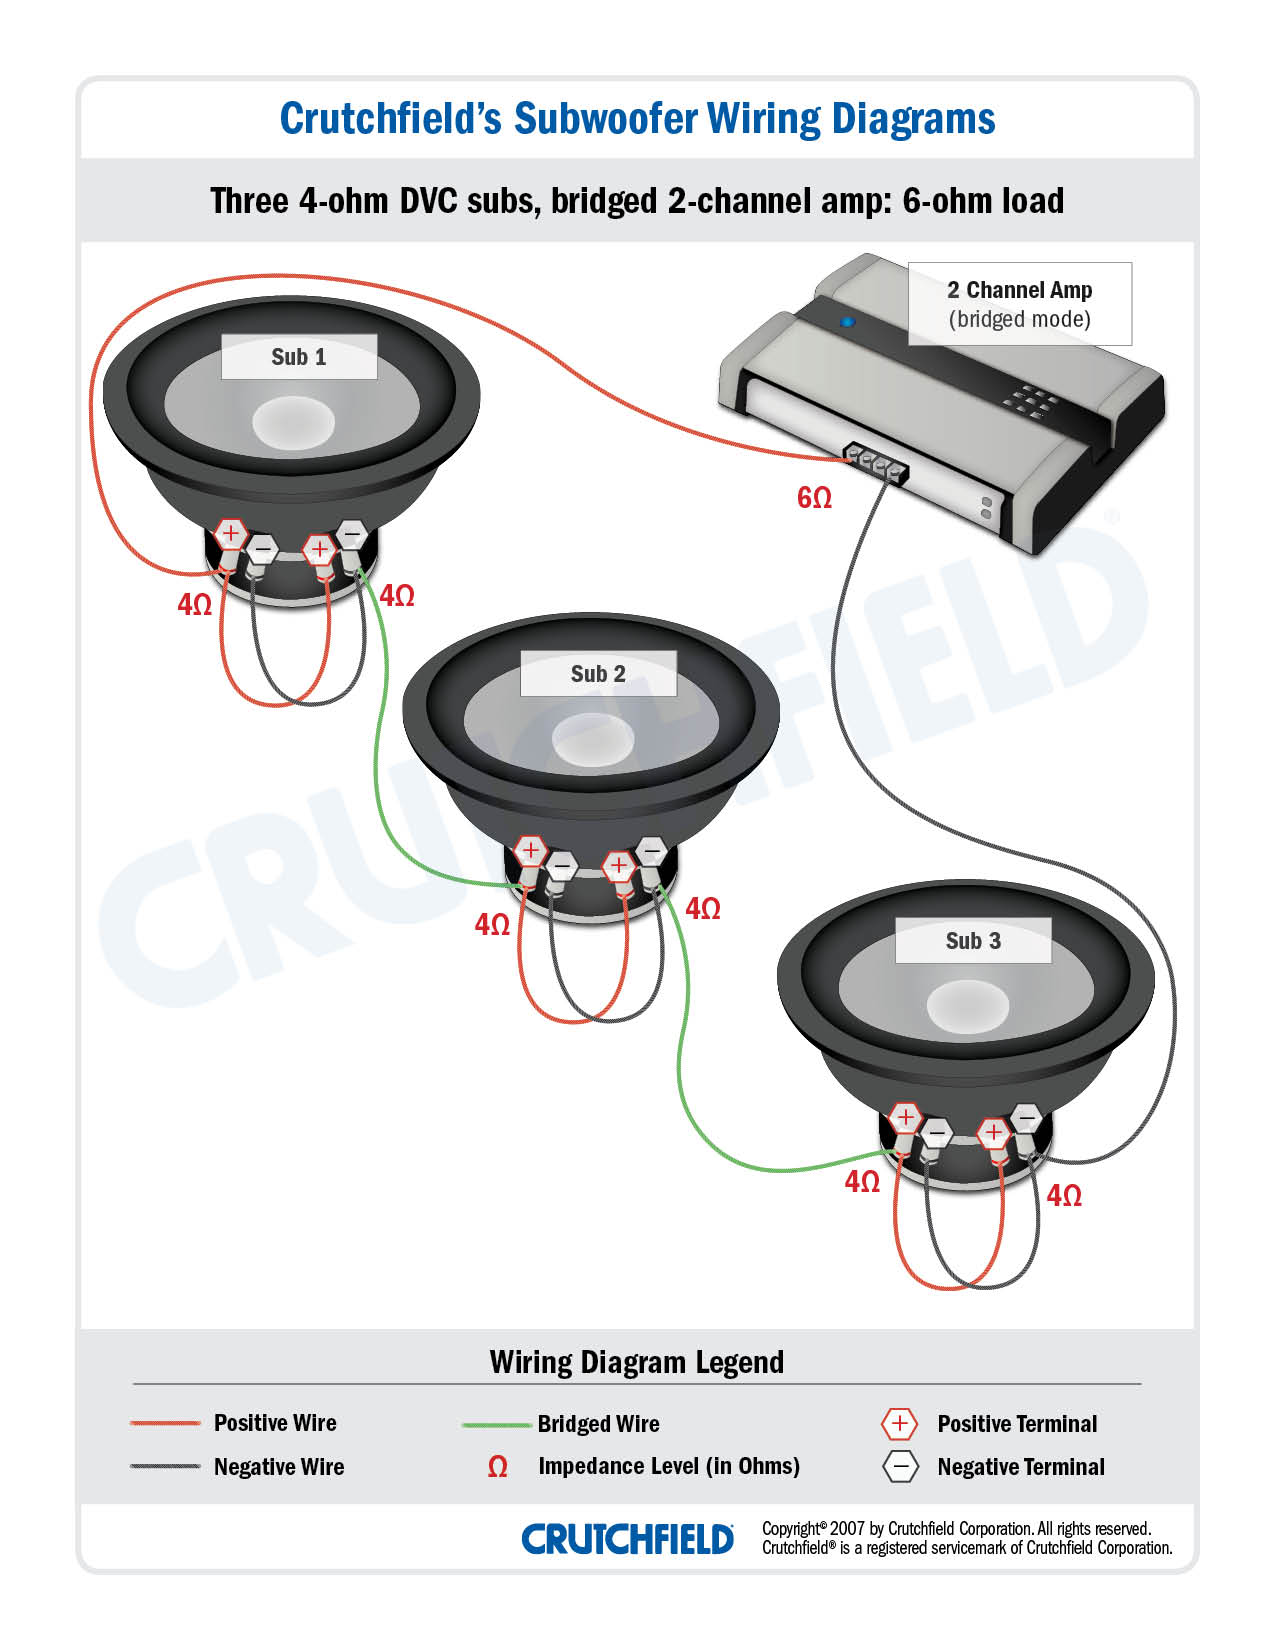 subwoofer wiring diagrams ccfd14ni bibliofem nl \u2022subwoofer wiring diagrams how to wire your subs rh crutchfield com subwoofer wiring diagram youtube subwoofer